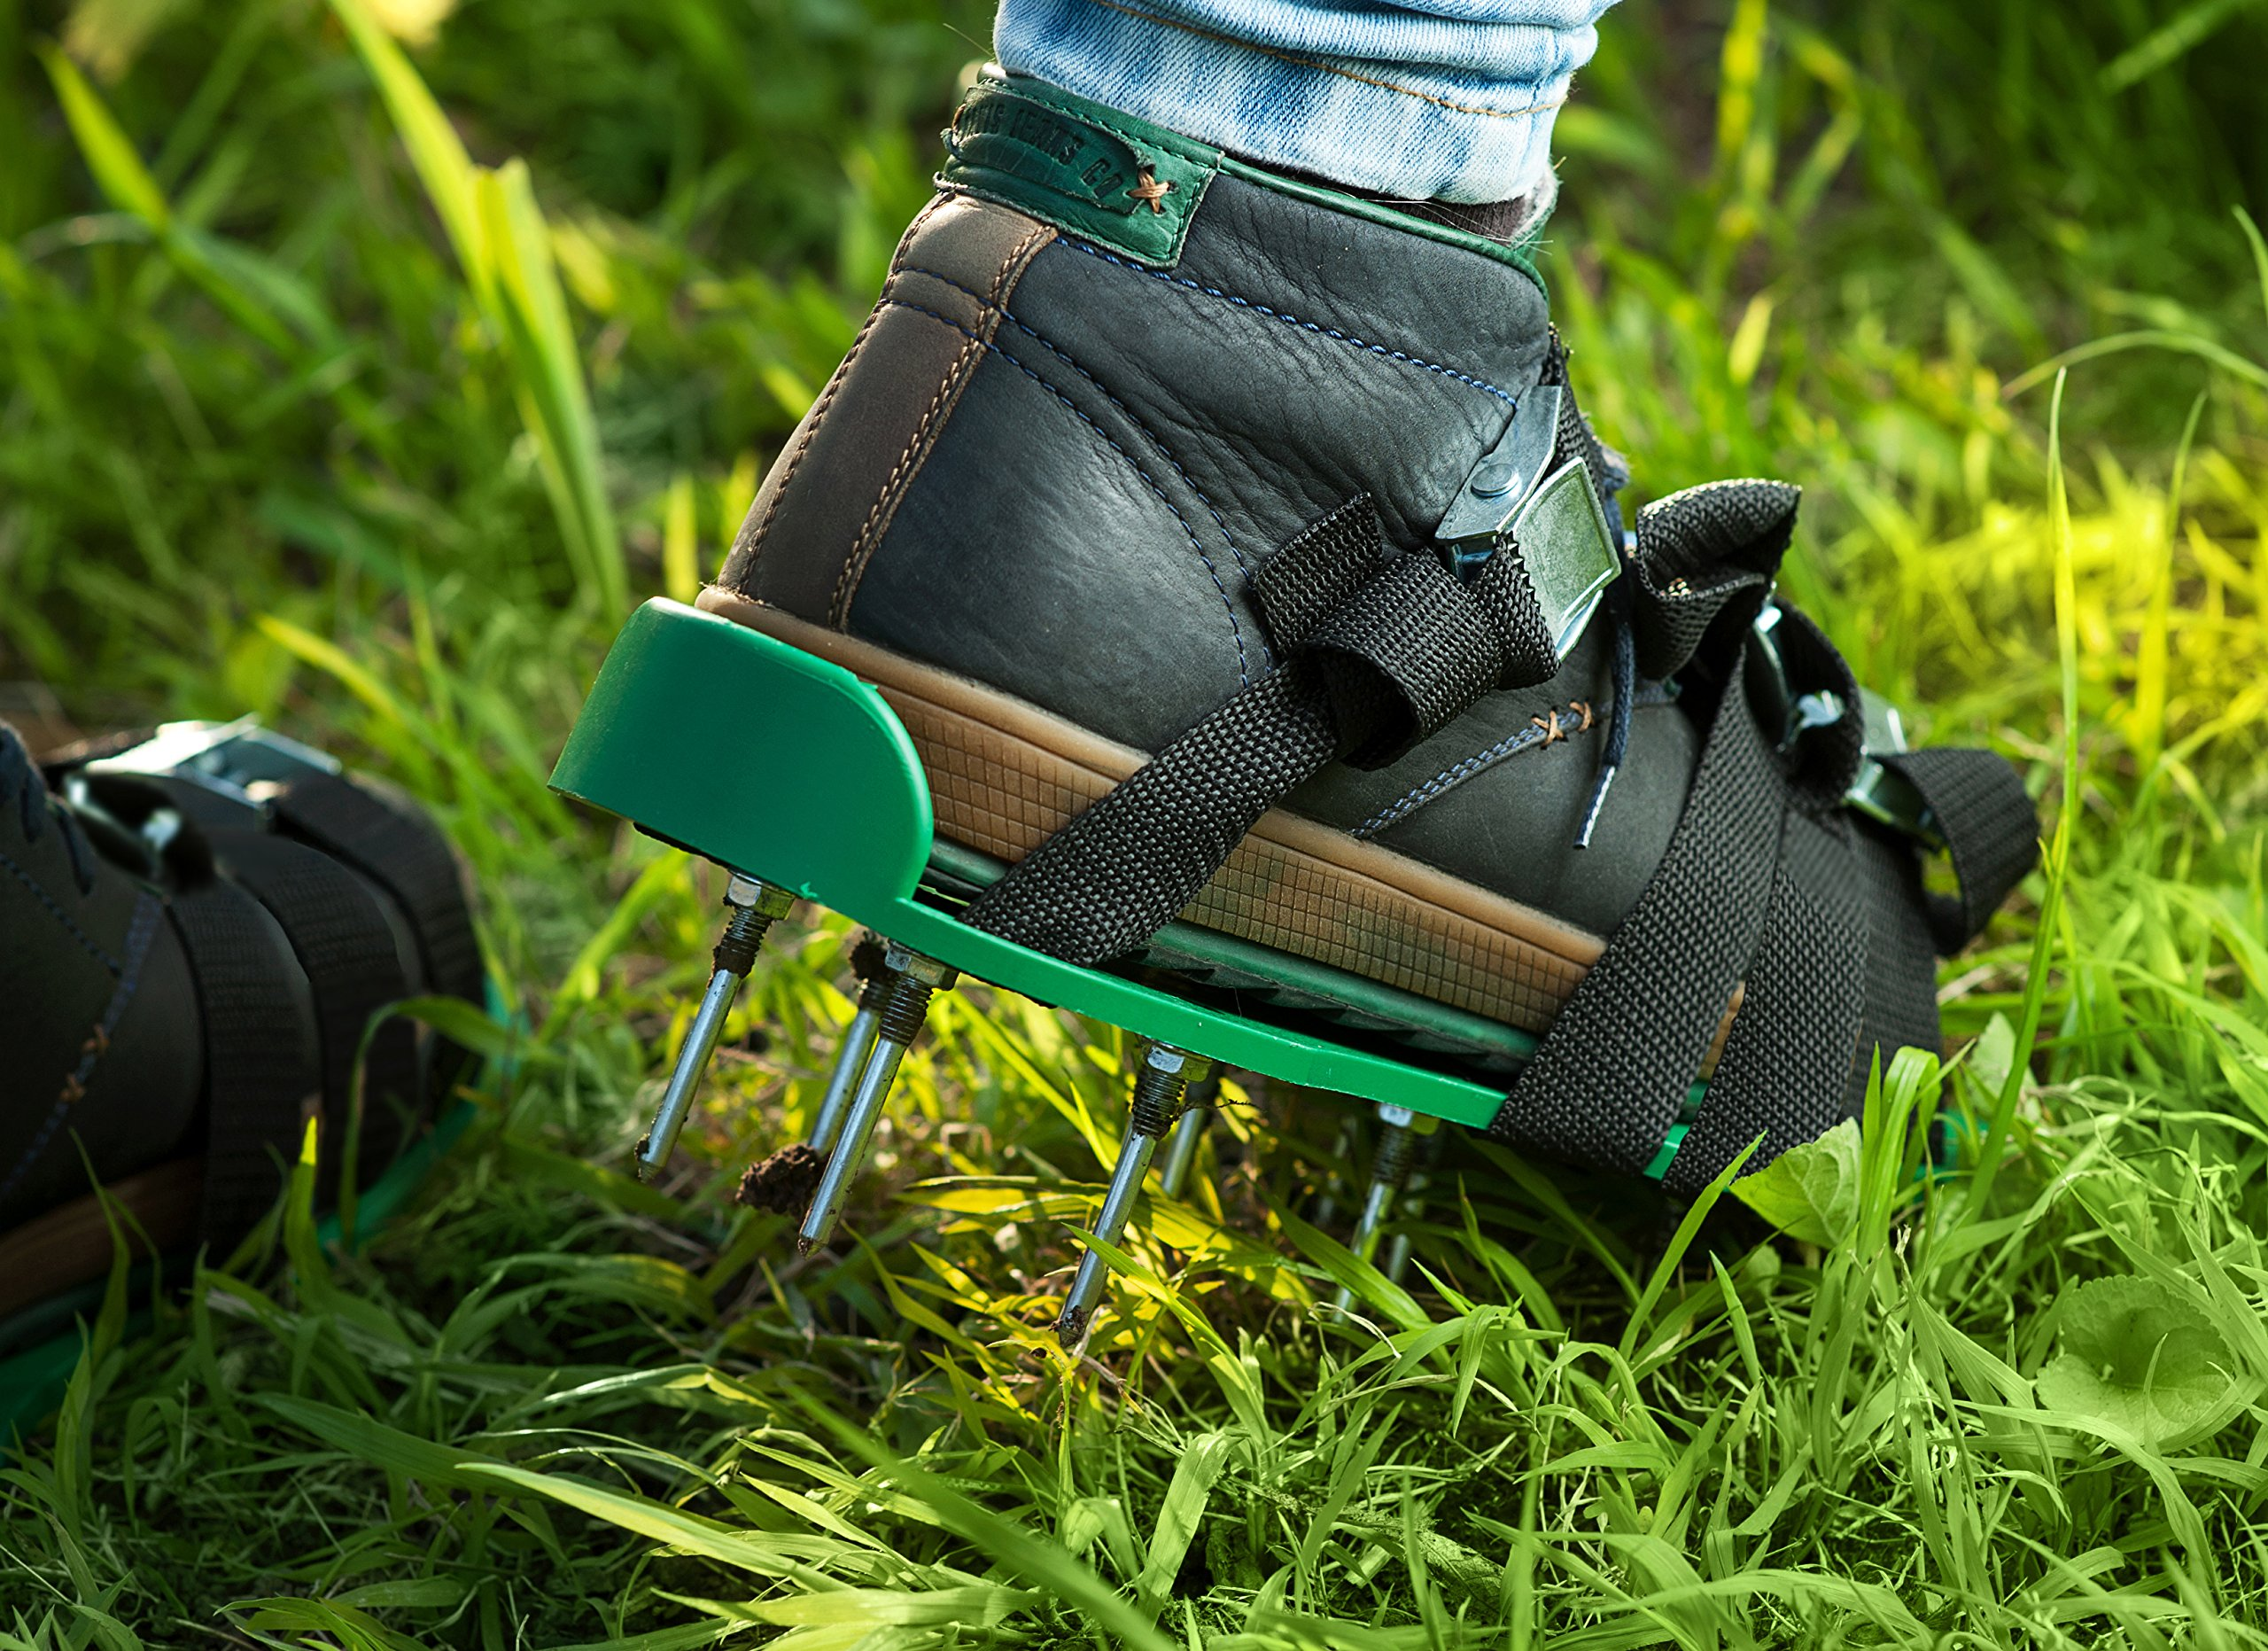 Professional Lawn Aeration Sandals with 4 Adjustable Durable Straps for Effective Treating, Aerate, Fertilize Lawn Soil-Lawn Aerator Shoes with Metal Buckles for Greener and Healthier Grass,Yard Care. by Skilur P (Image #5)